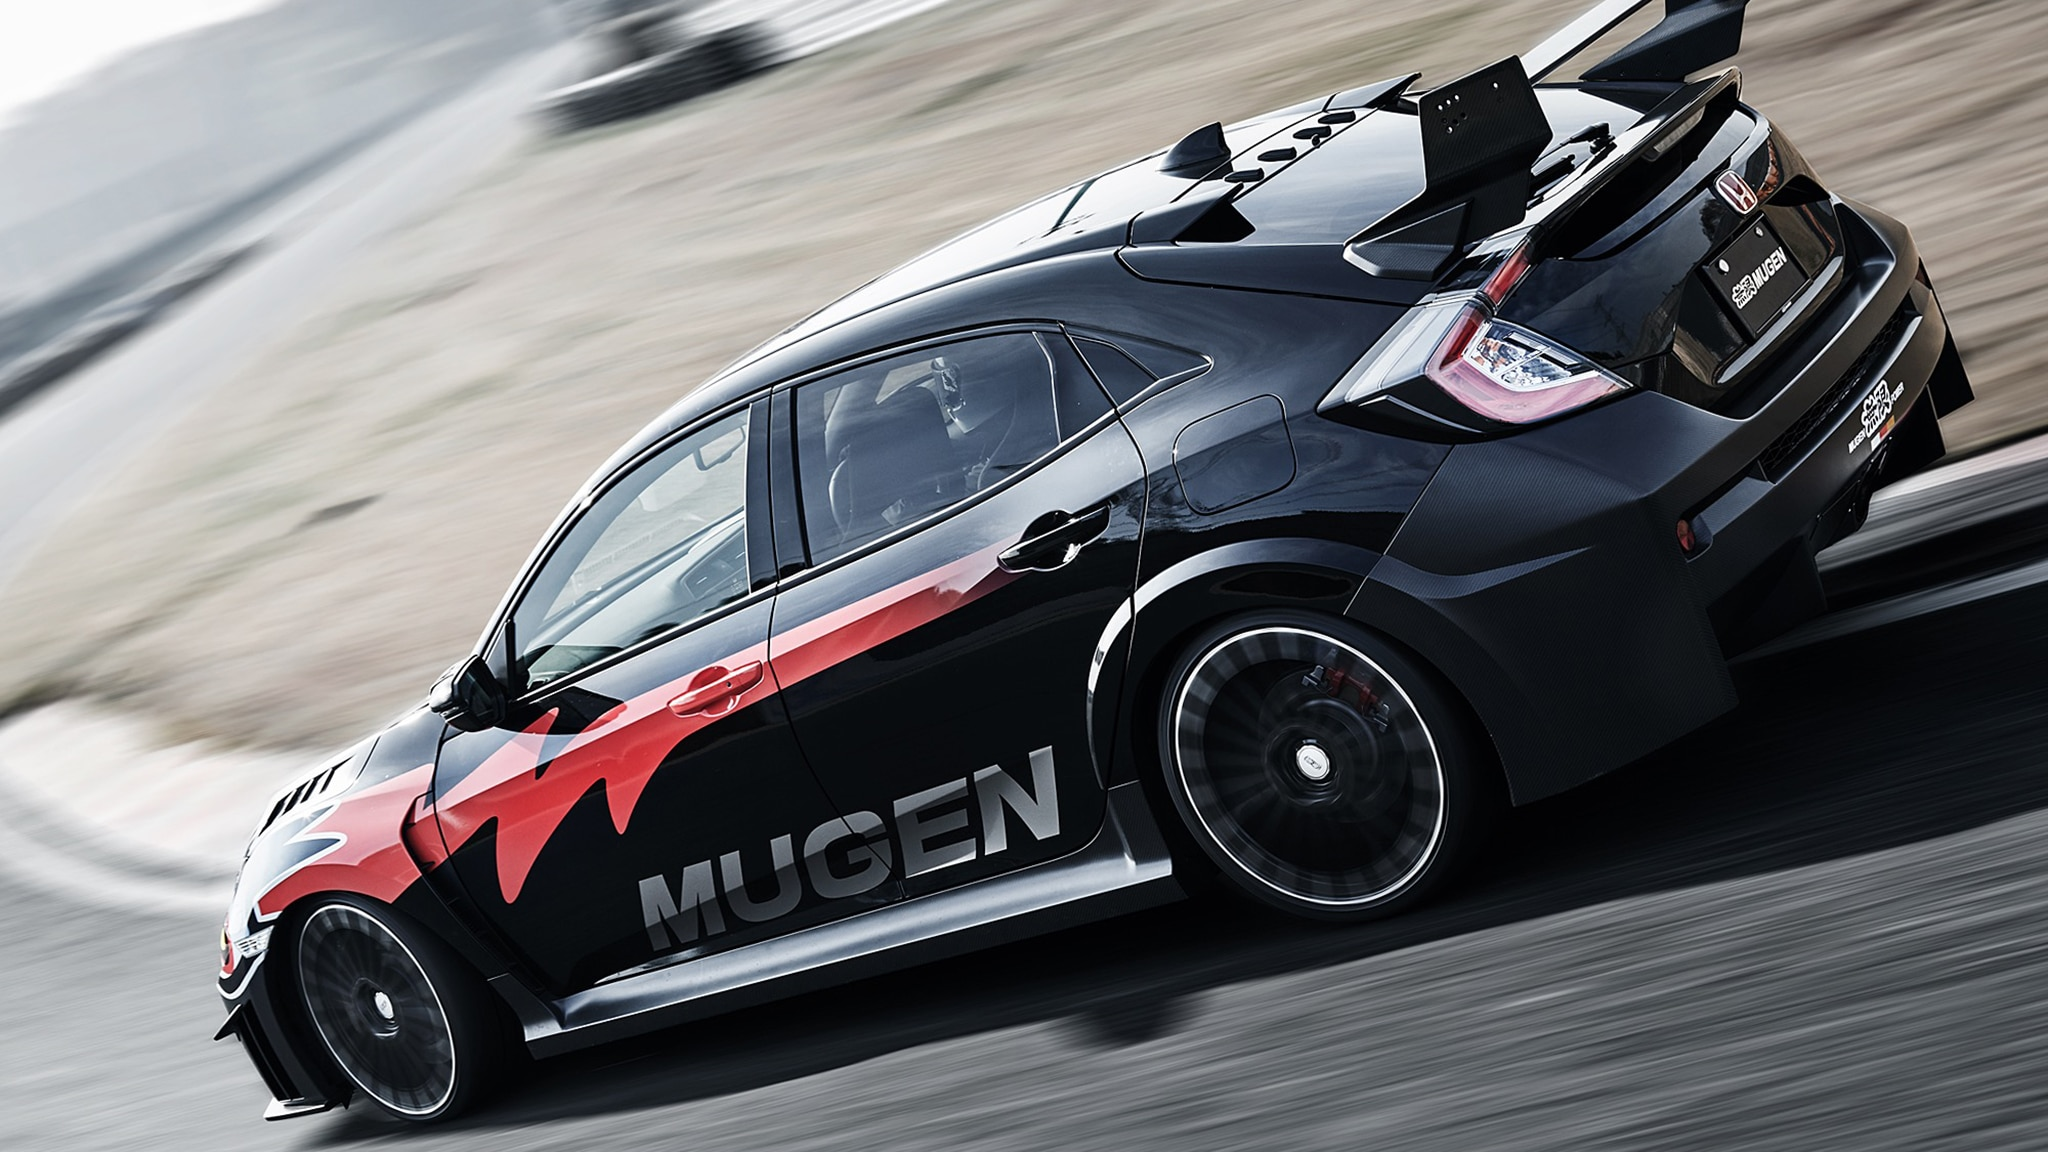 The Mugen Rc20gt Cures The Honda Civic Type R U0026 39 S Subtle